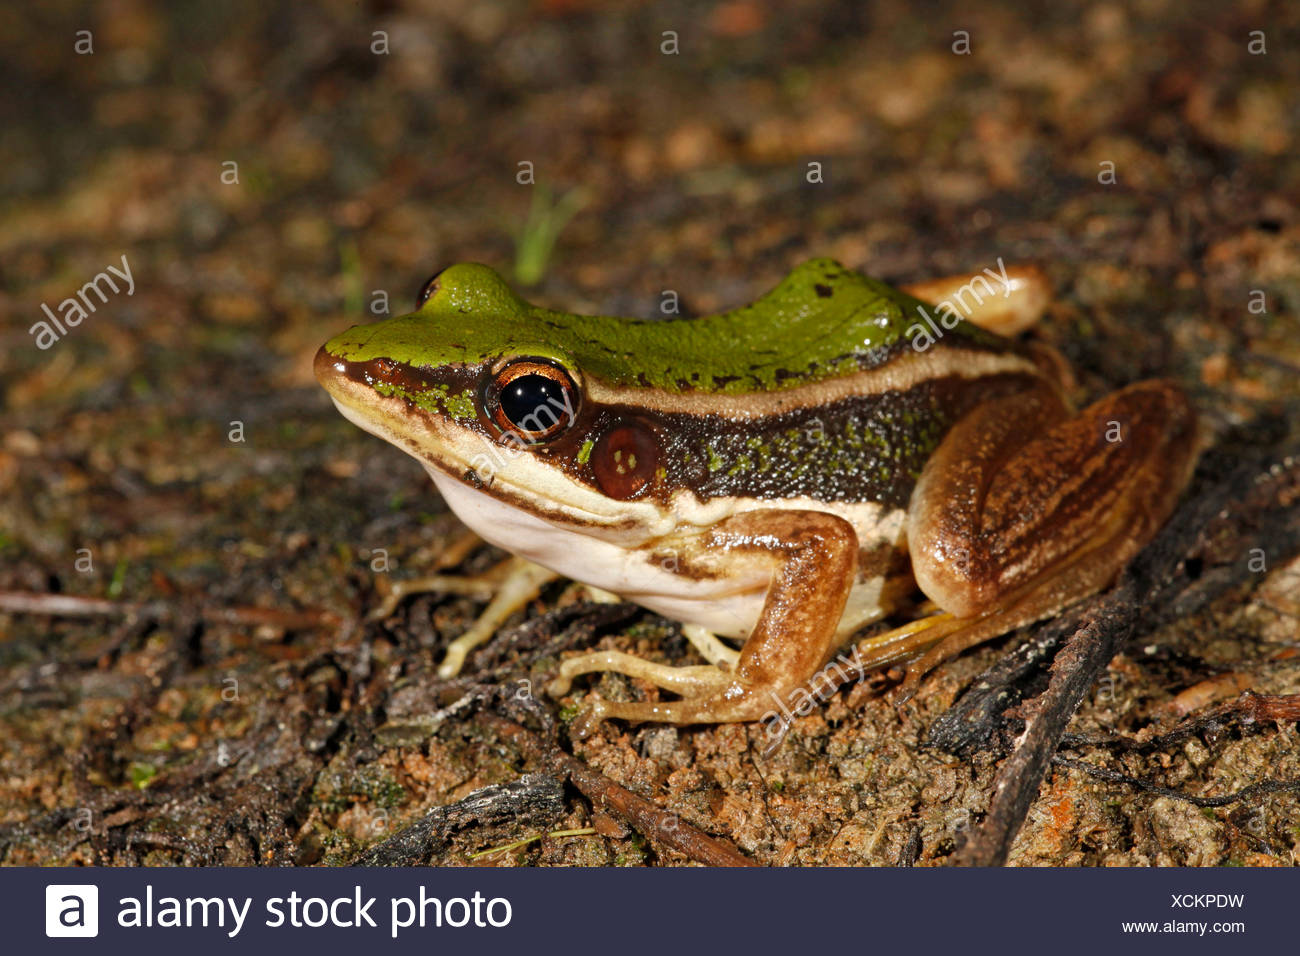 photo of an adult green paddy frog - Stock Image